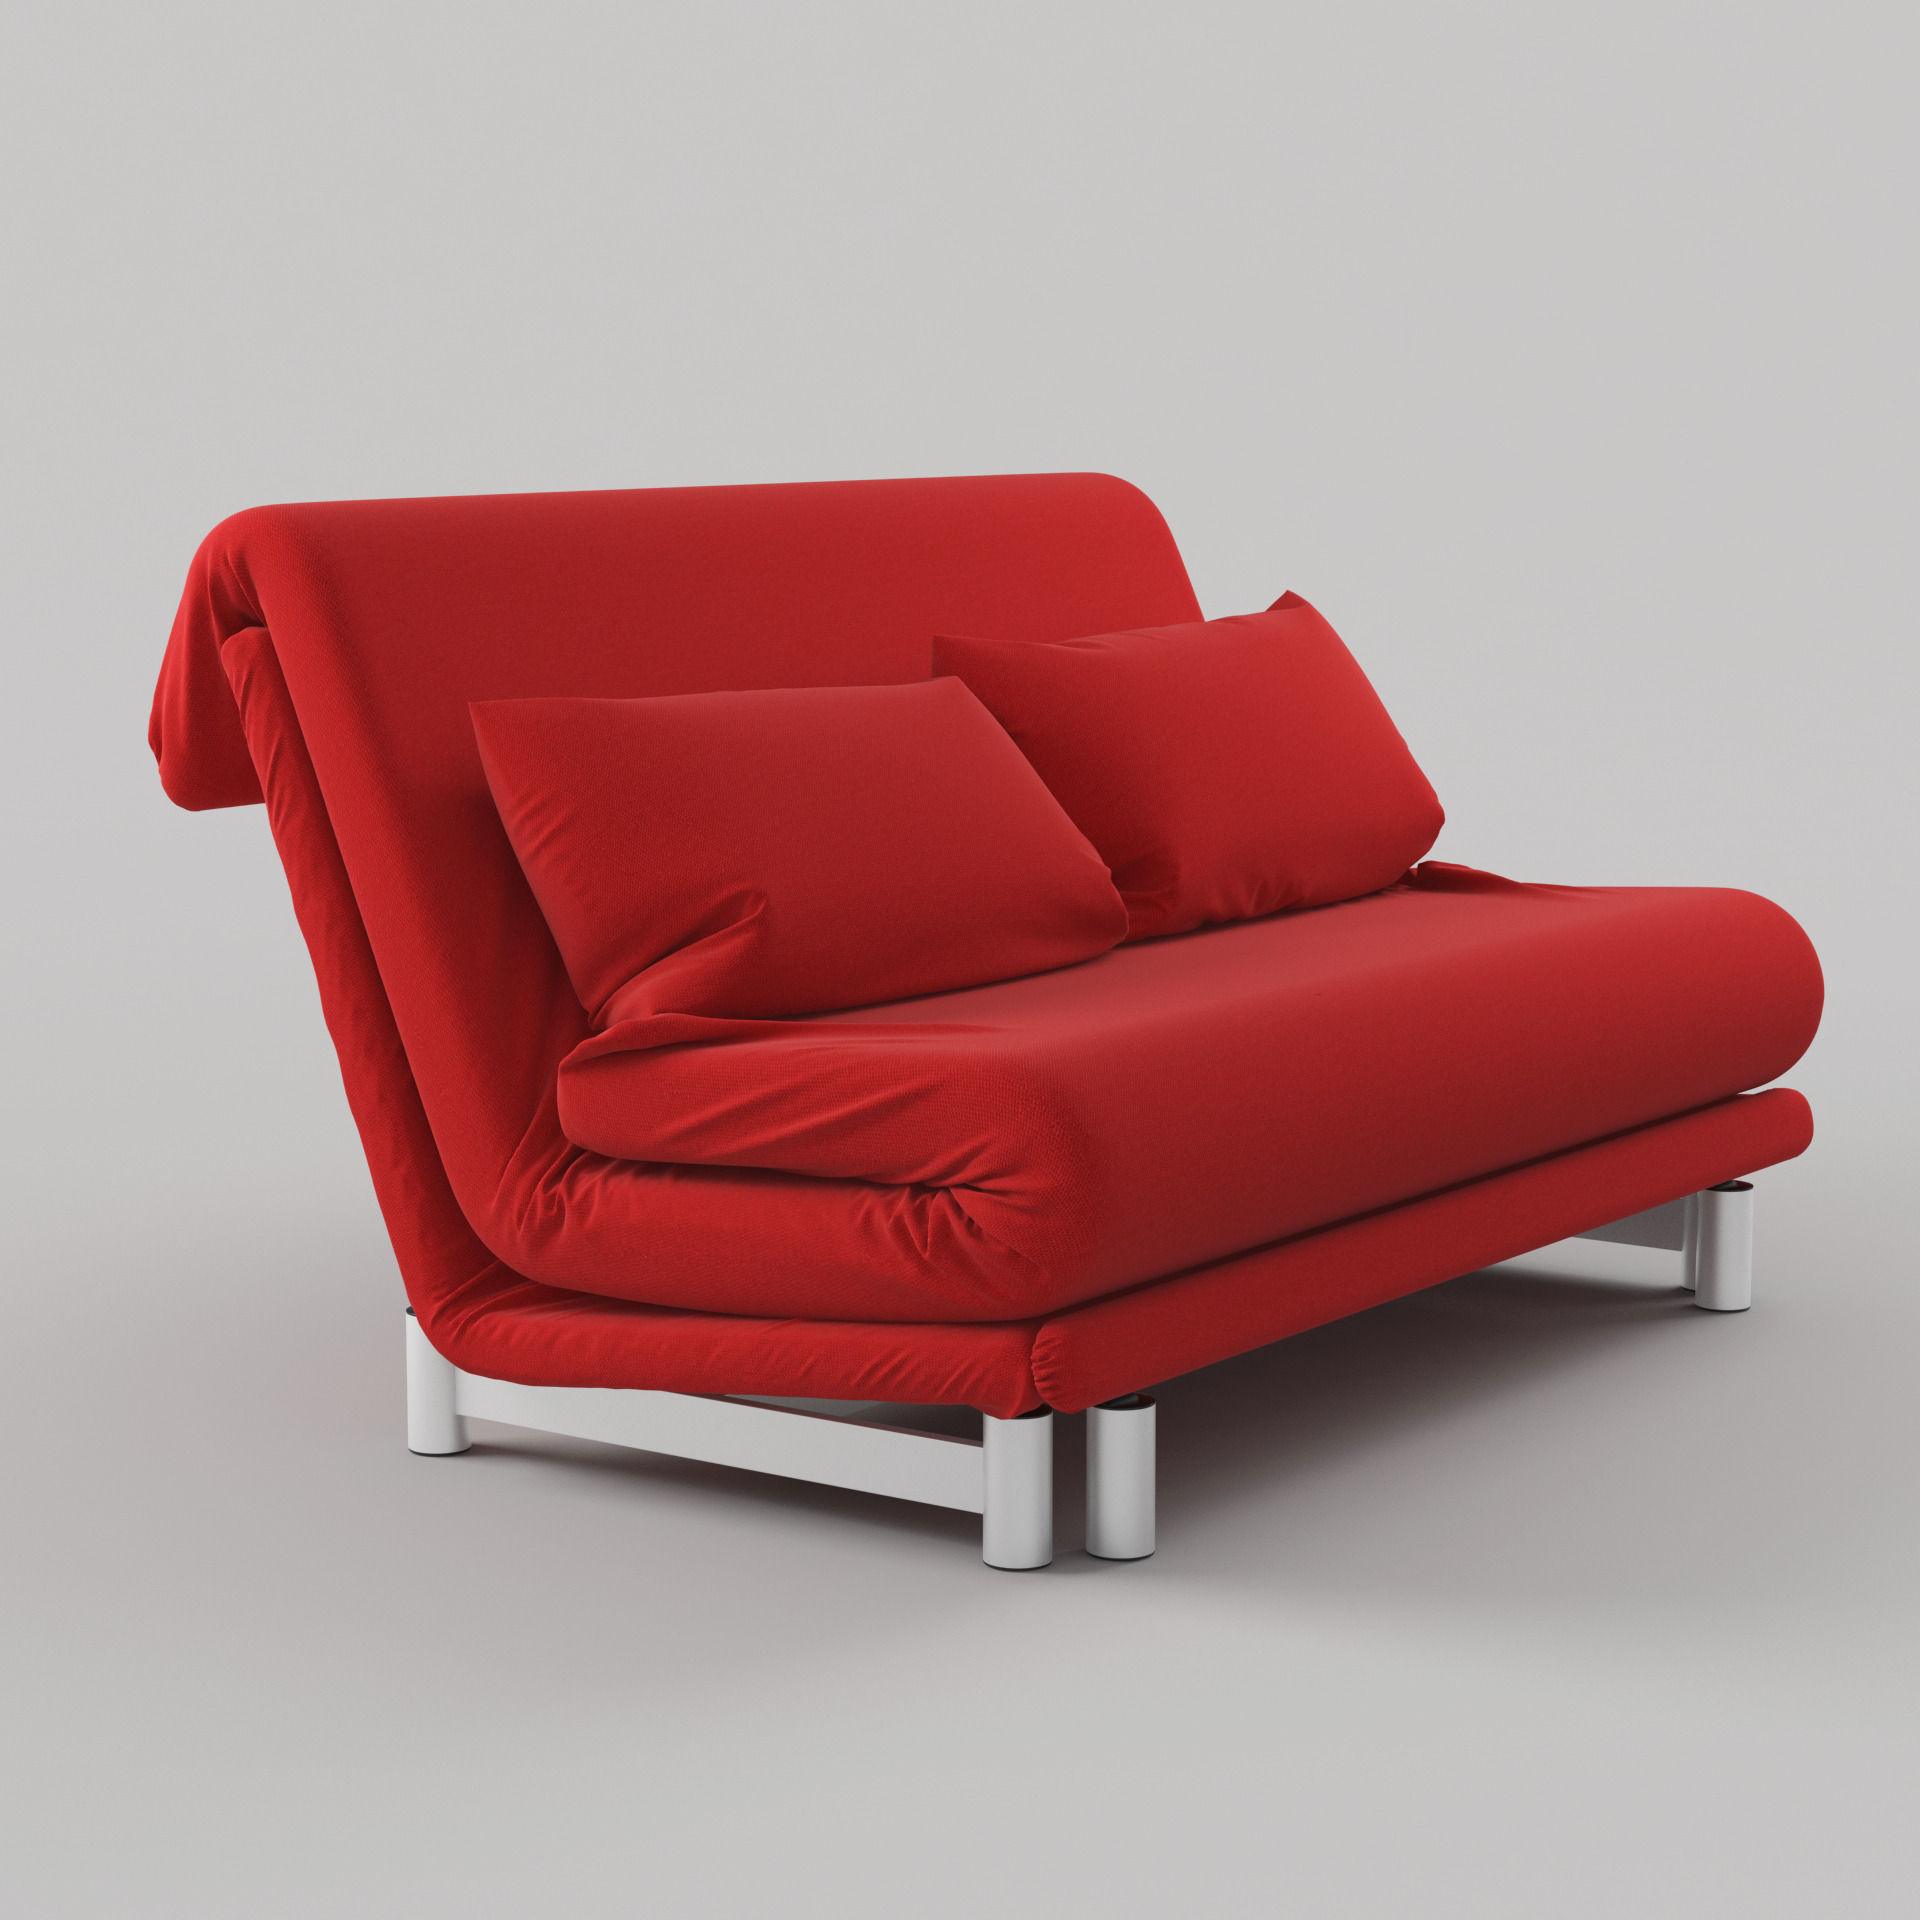 stylish sofa bed price gallery-Lovely sofa Bed Price Construction